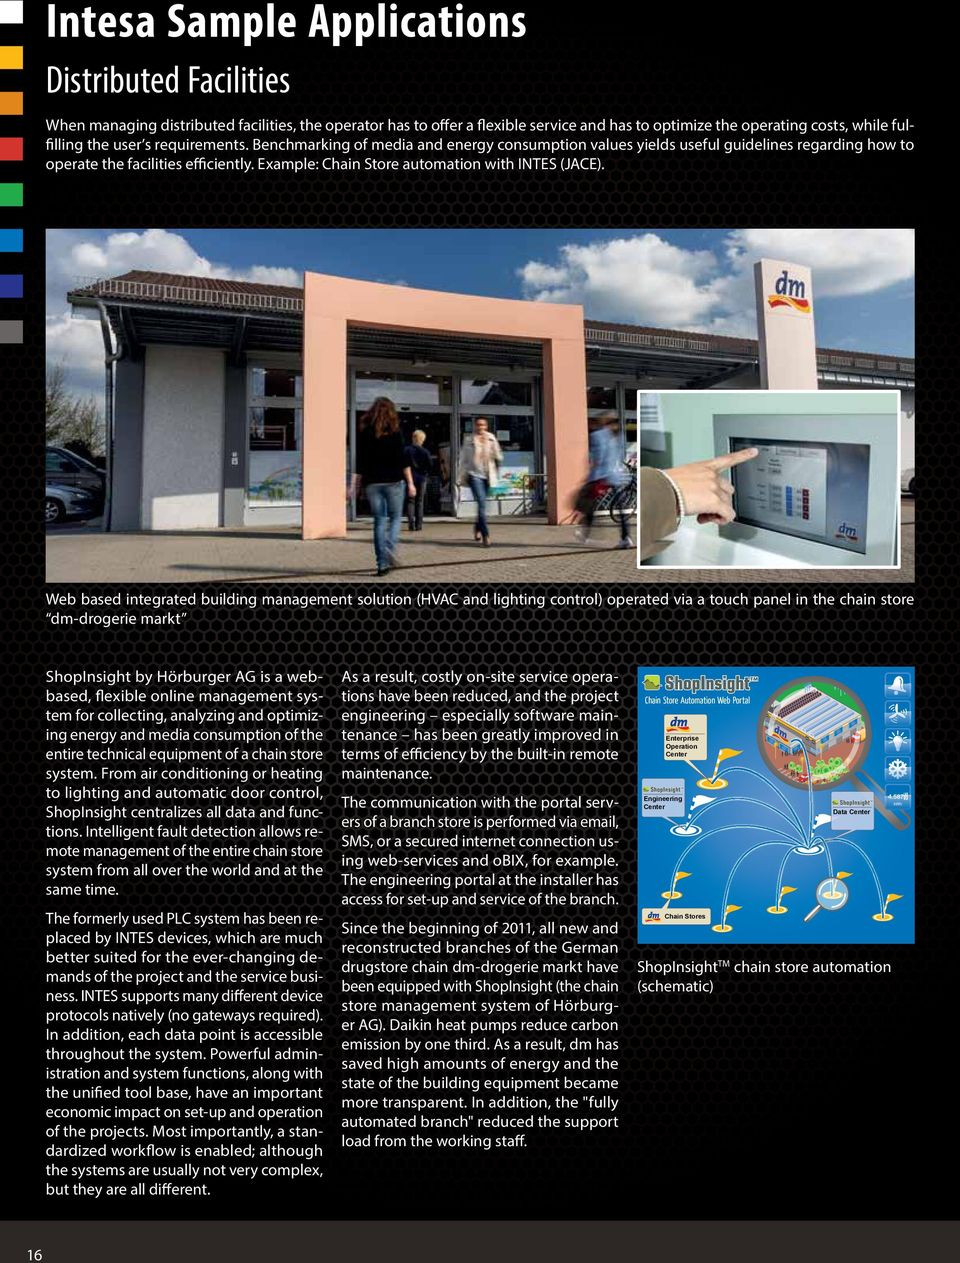 Web based integrated building management solution (HVAC and lighting control) operated via a touch panel in the chain store dm-drogerie markt ShopInsight by Hörburger AG is a webbased, flexible